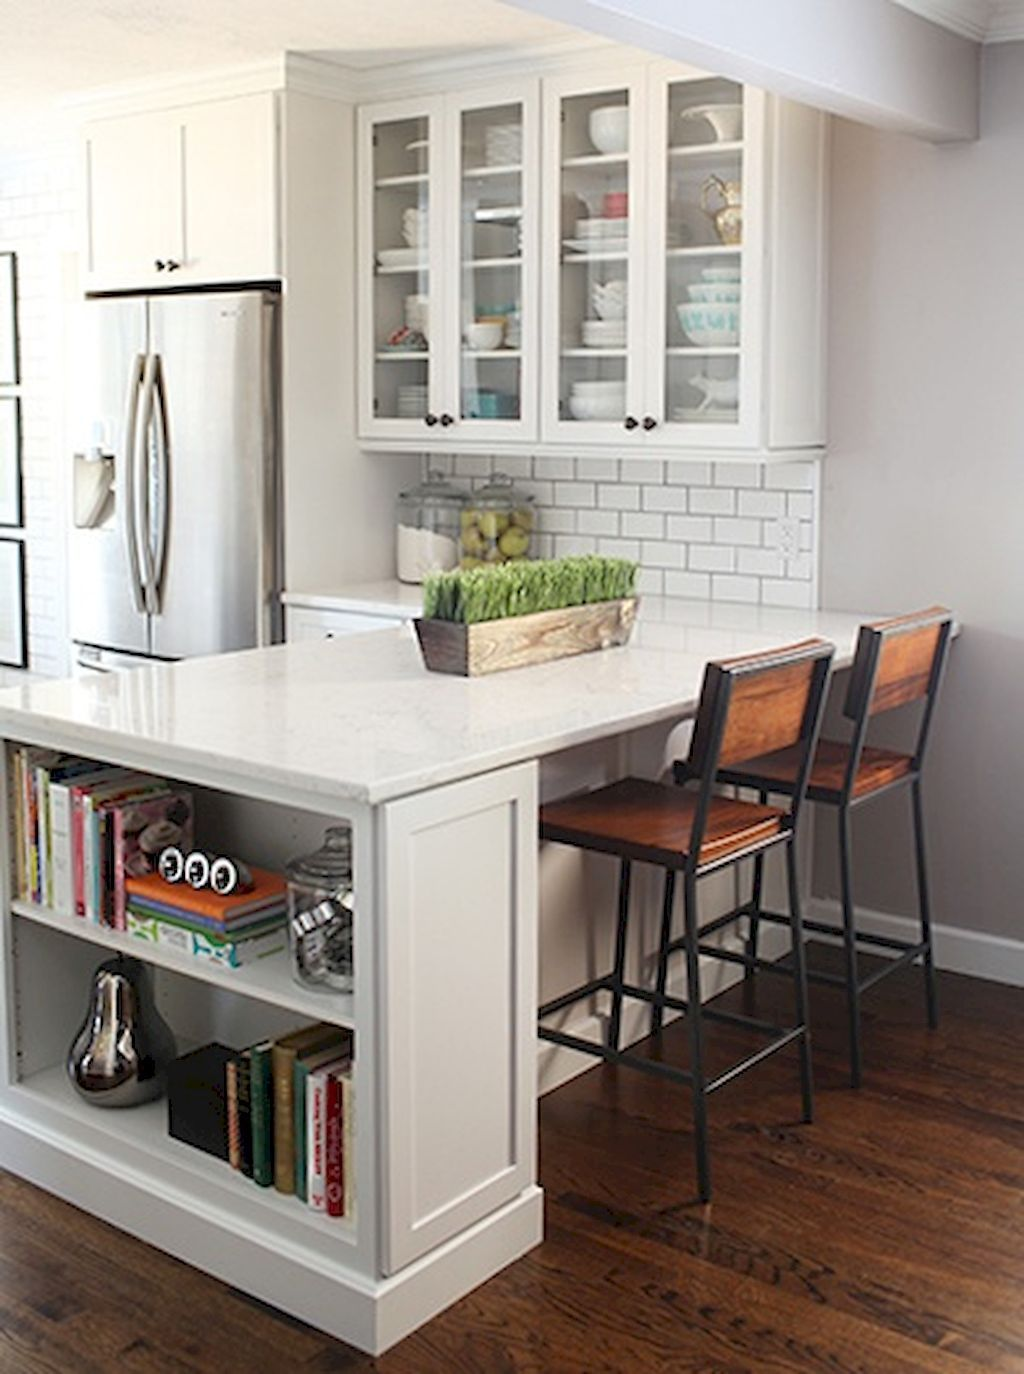 90 Inspiring Small Kitchen Remodel Ideas  Organization Ideas Beauteous Remodeling Kitchen Inspiration